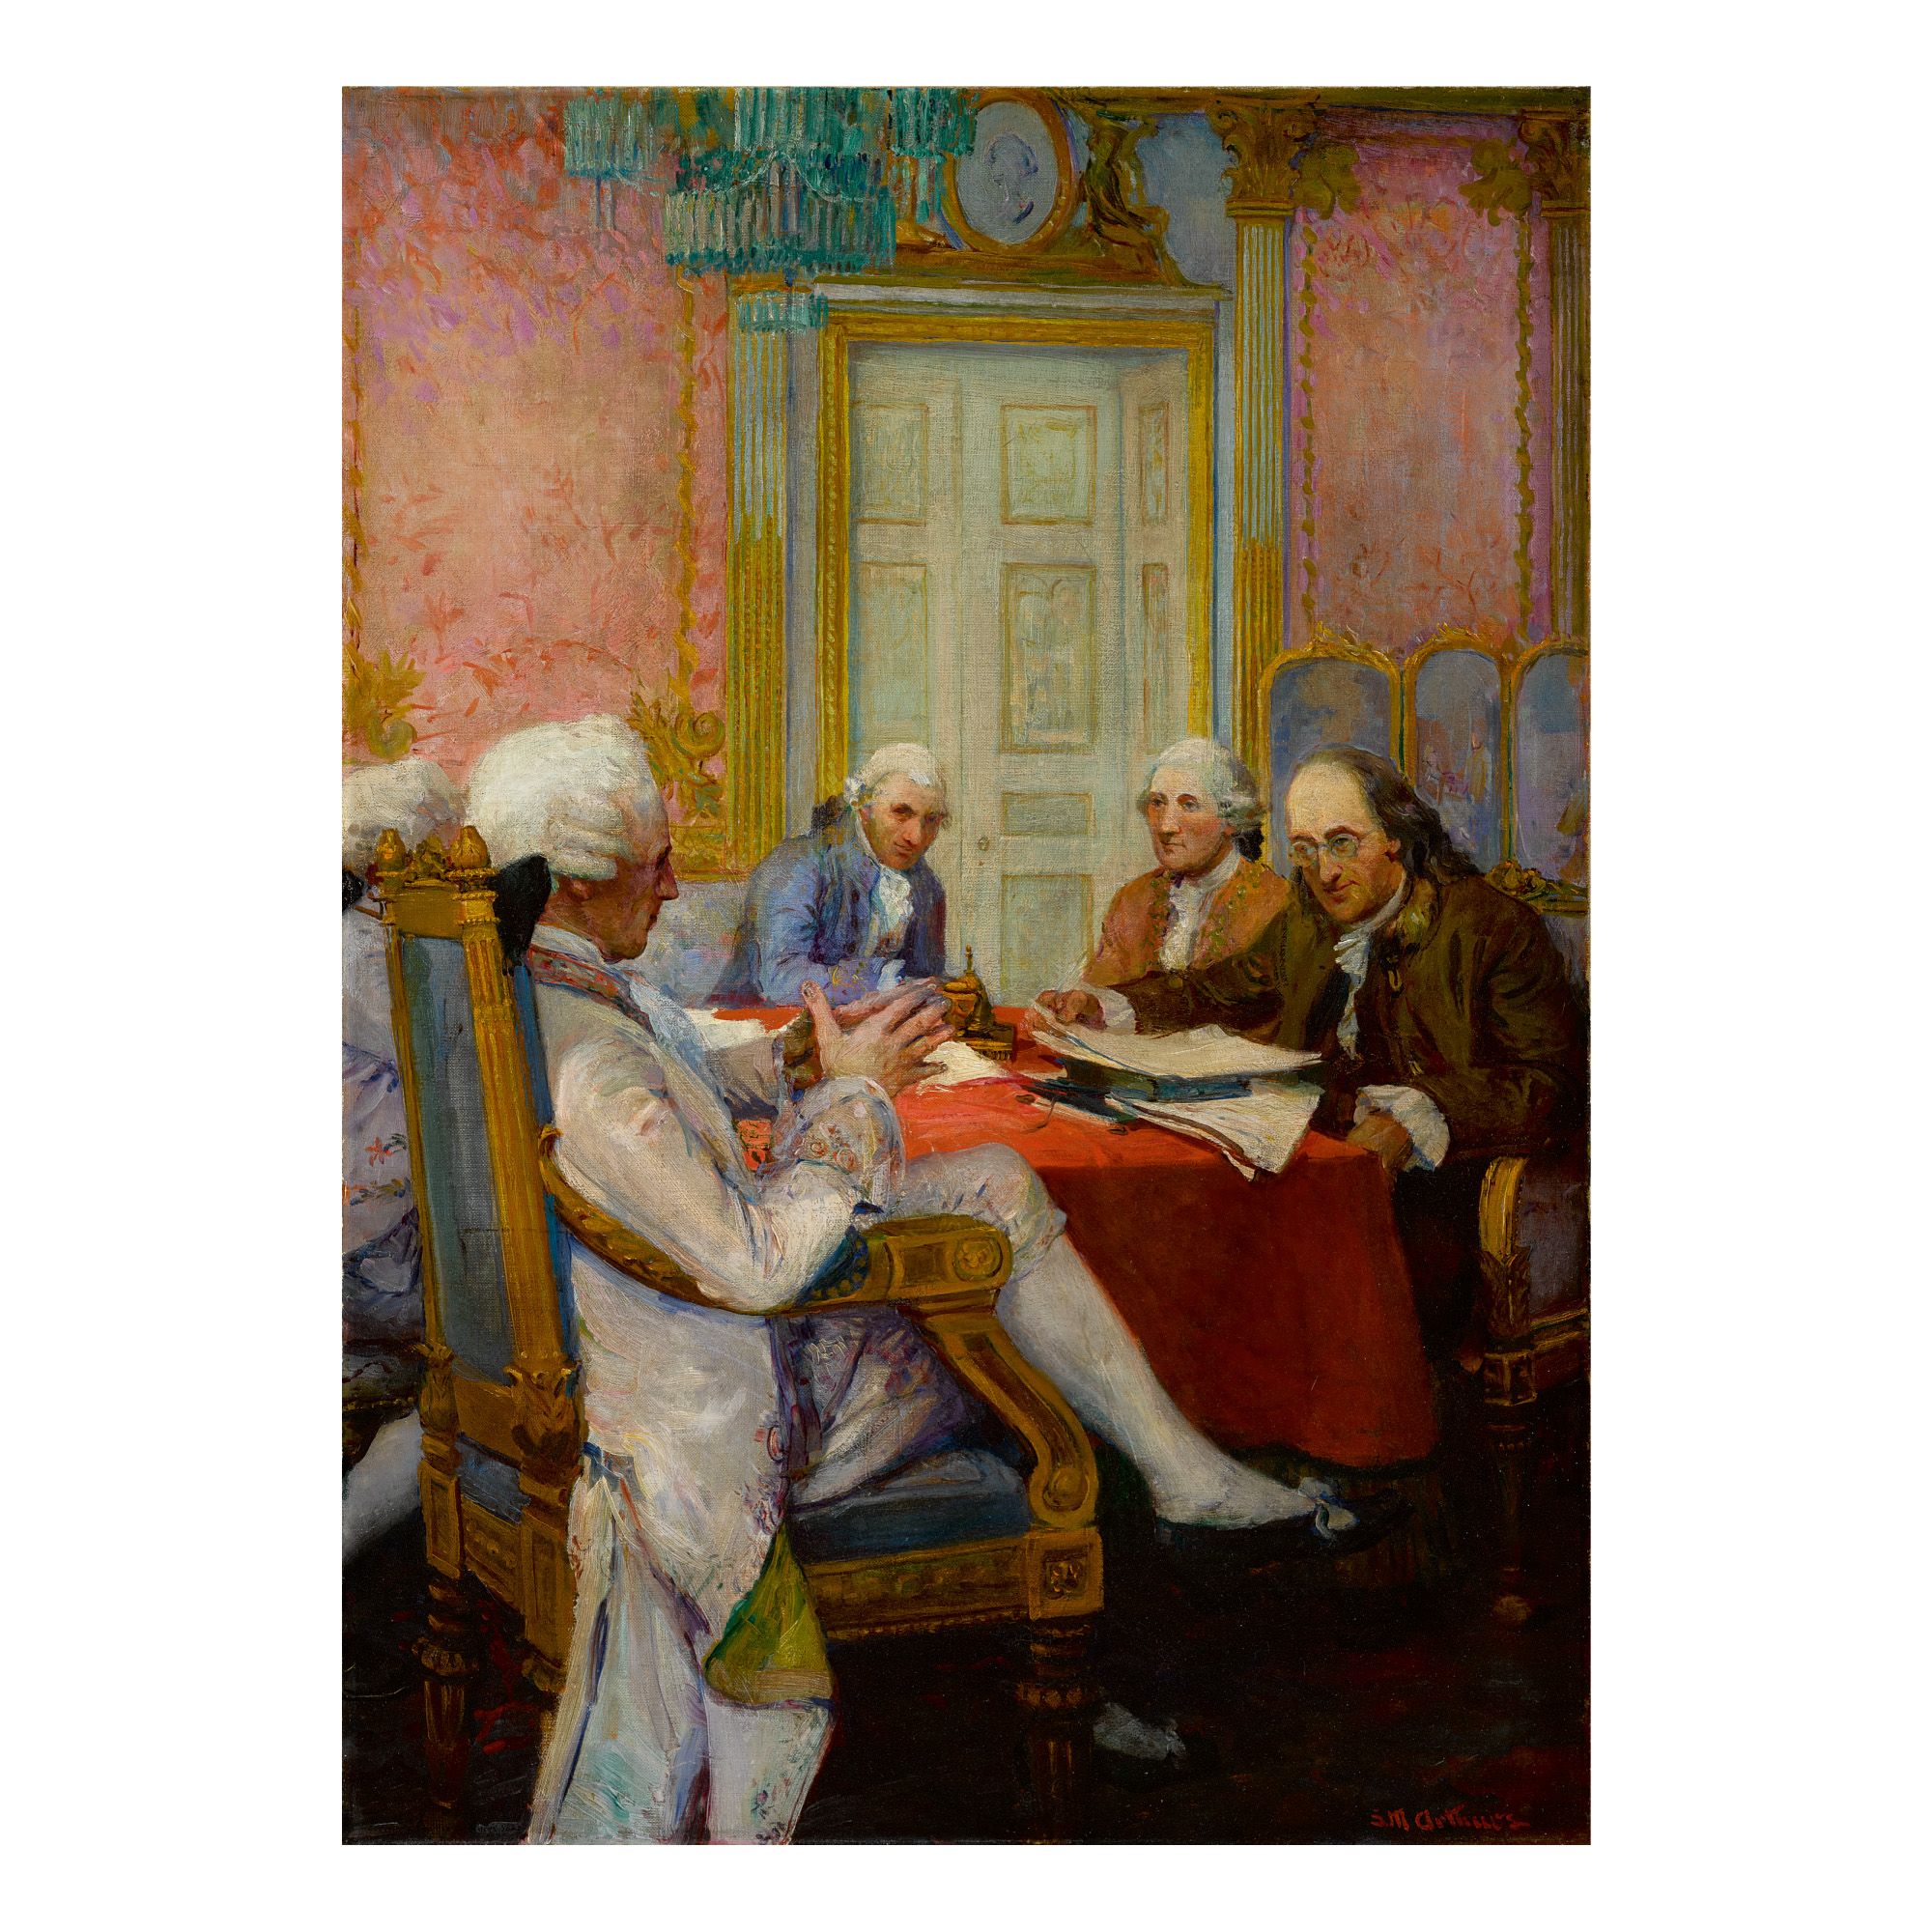 STANLEY MASSEY ARTHURS | FRANKLIN AT THE FRENCH COURT